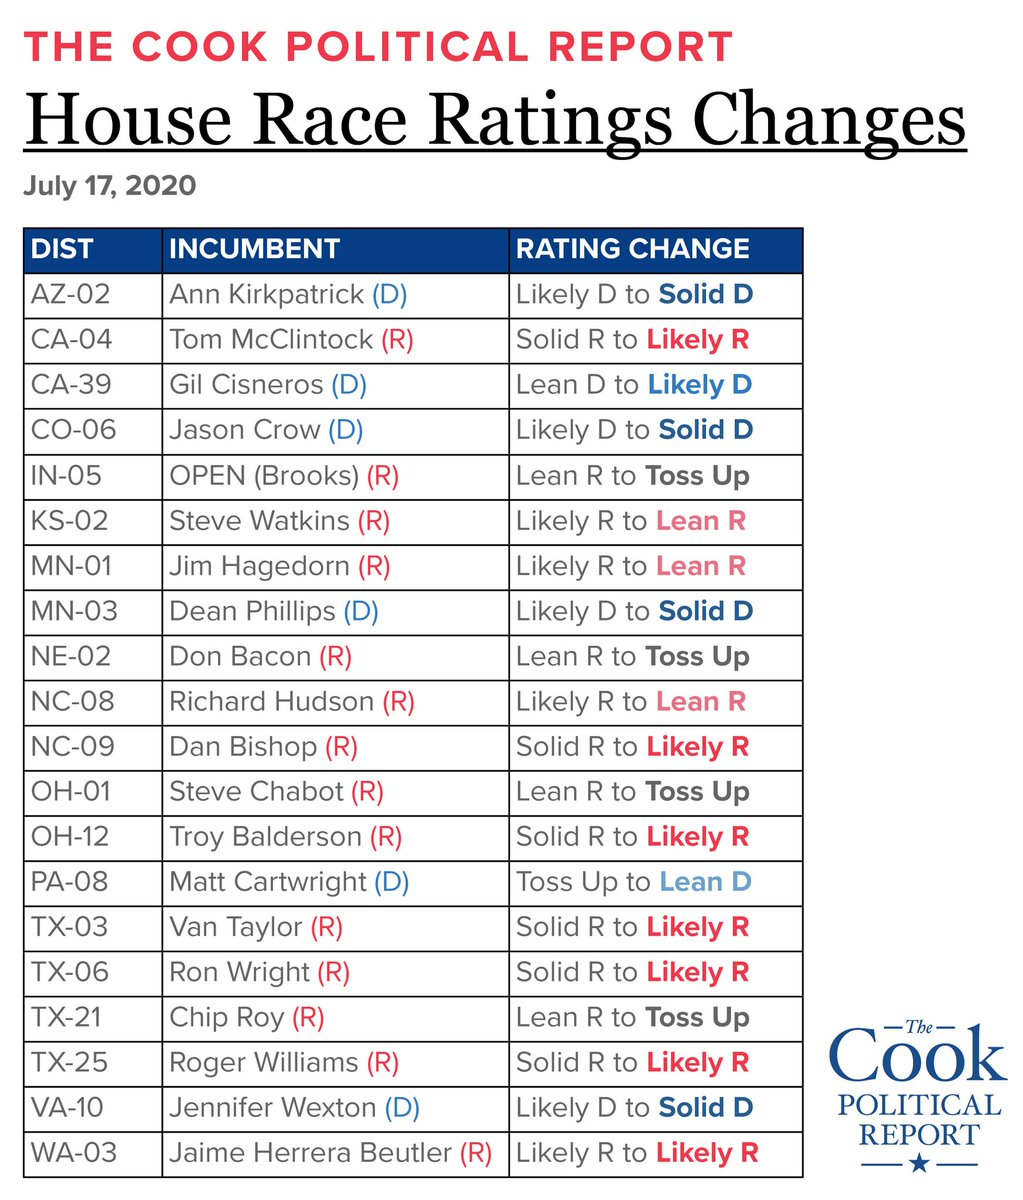 New at @CookPolitical: House rating changes in 20 districts, all towards Democrats. I can't recall the last time we moved so many races at once, let alone in the same direction.